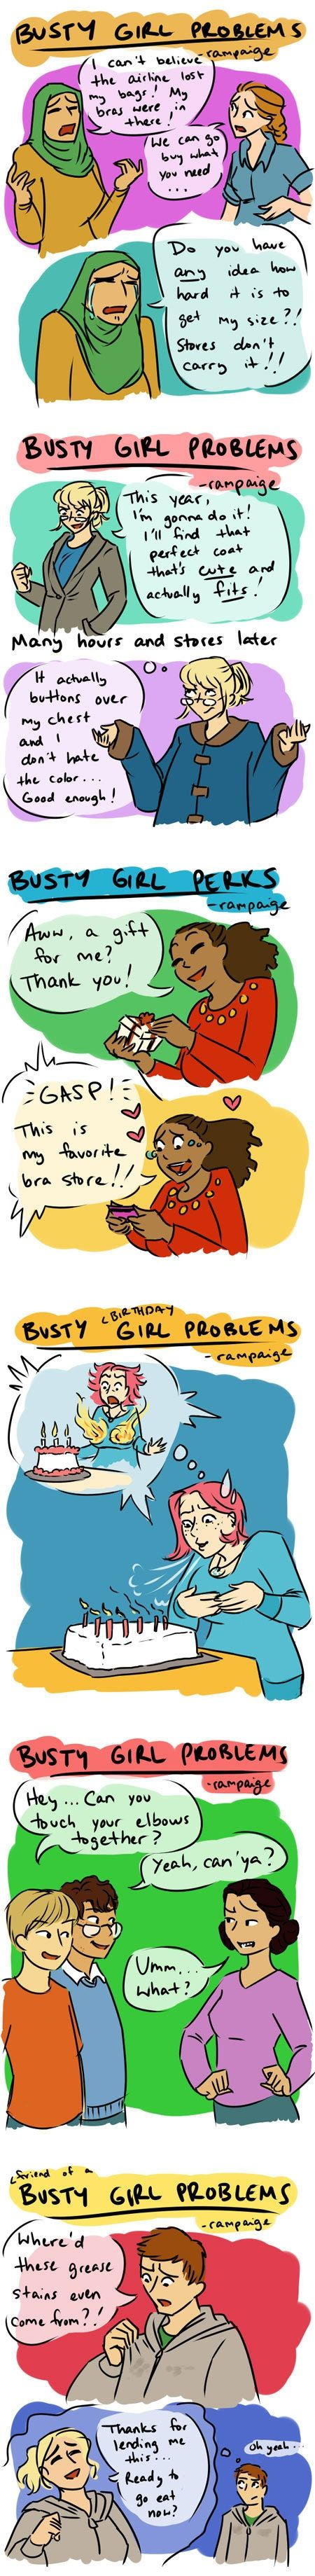 Busty girl problems.